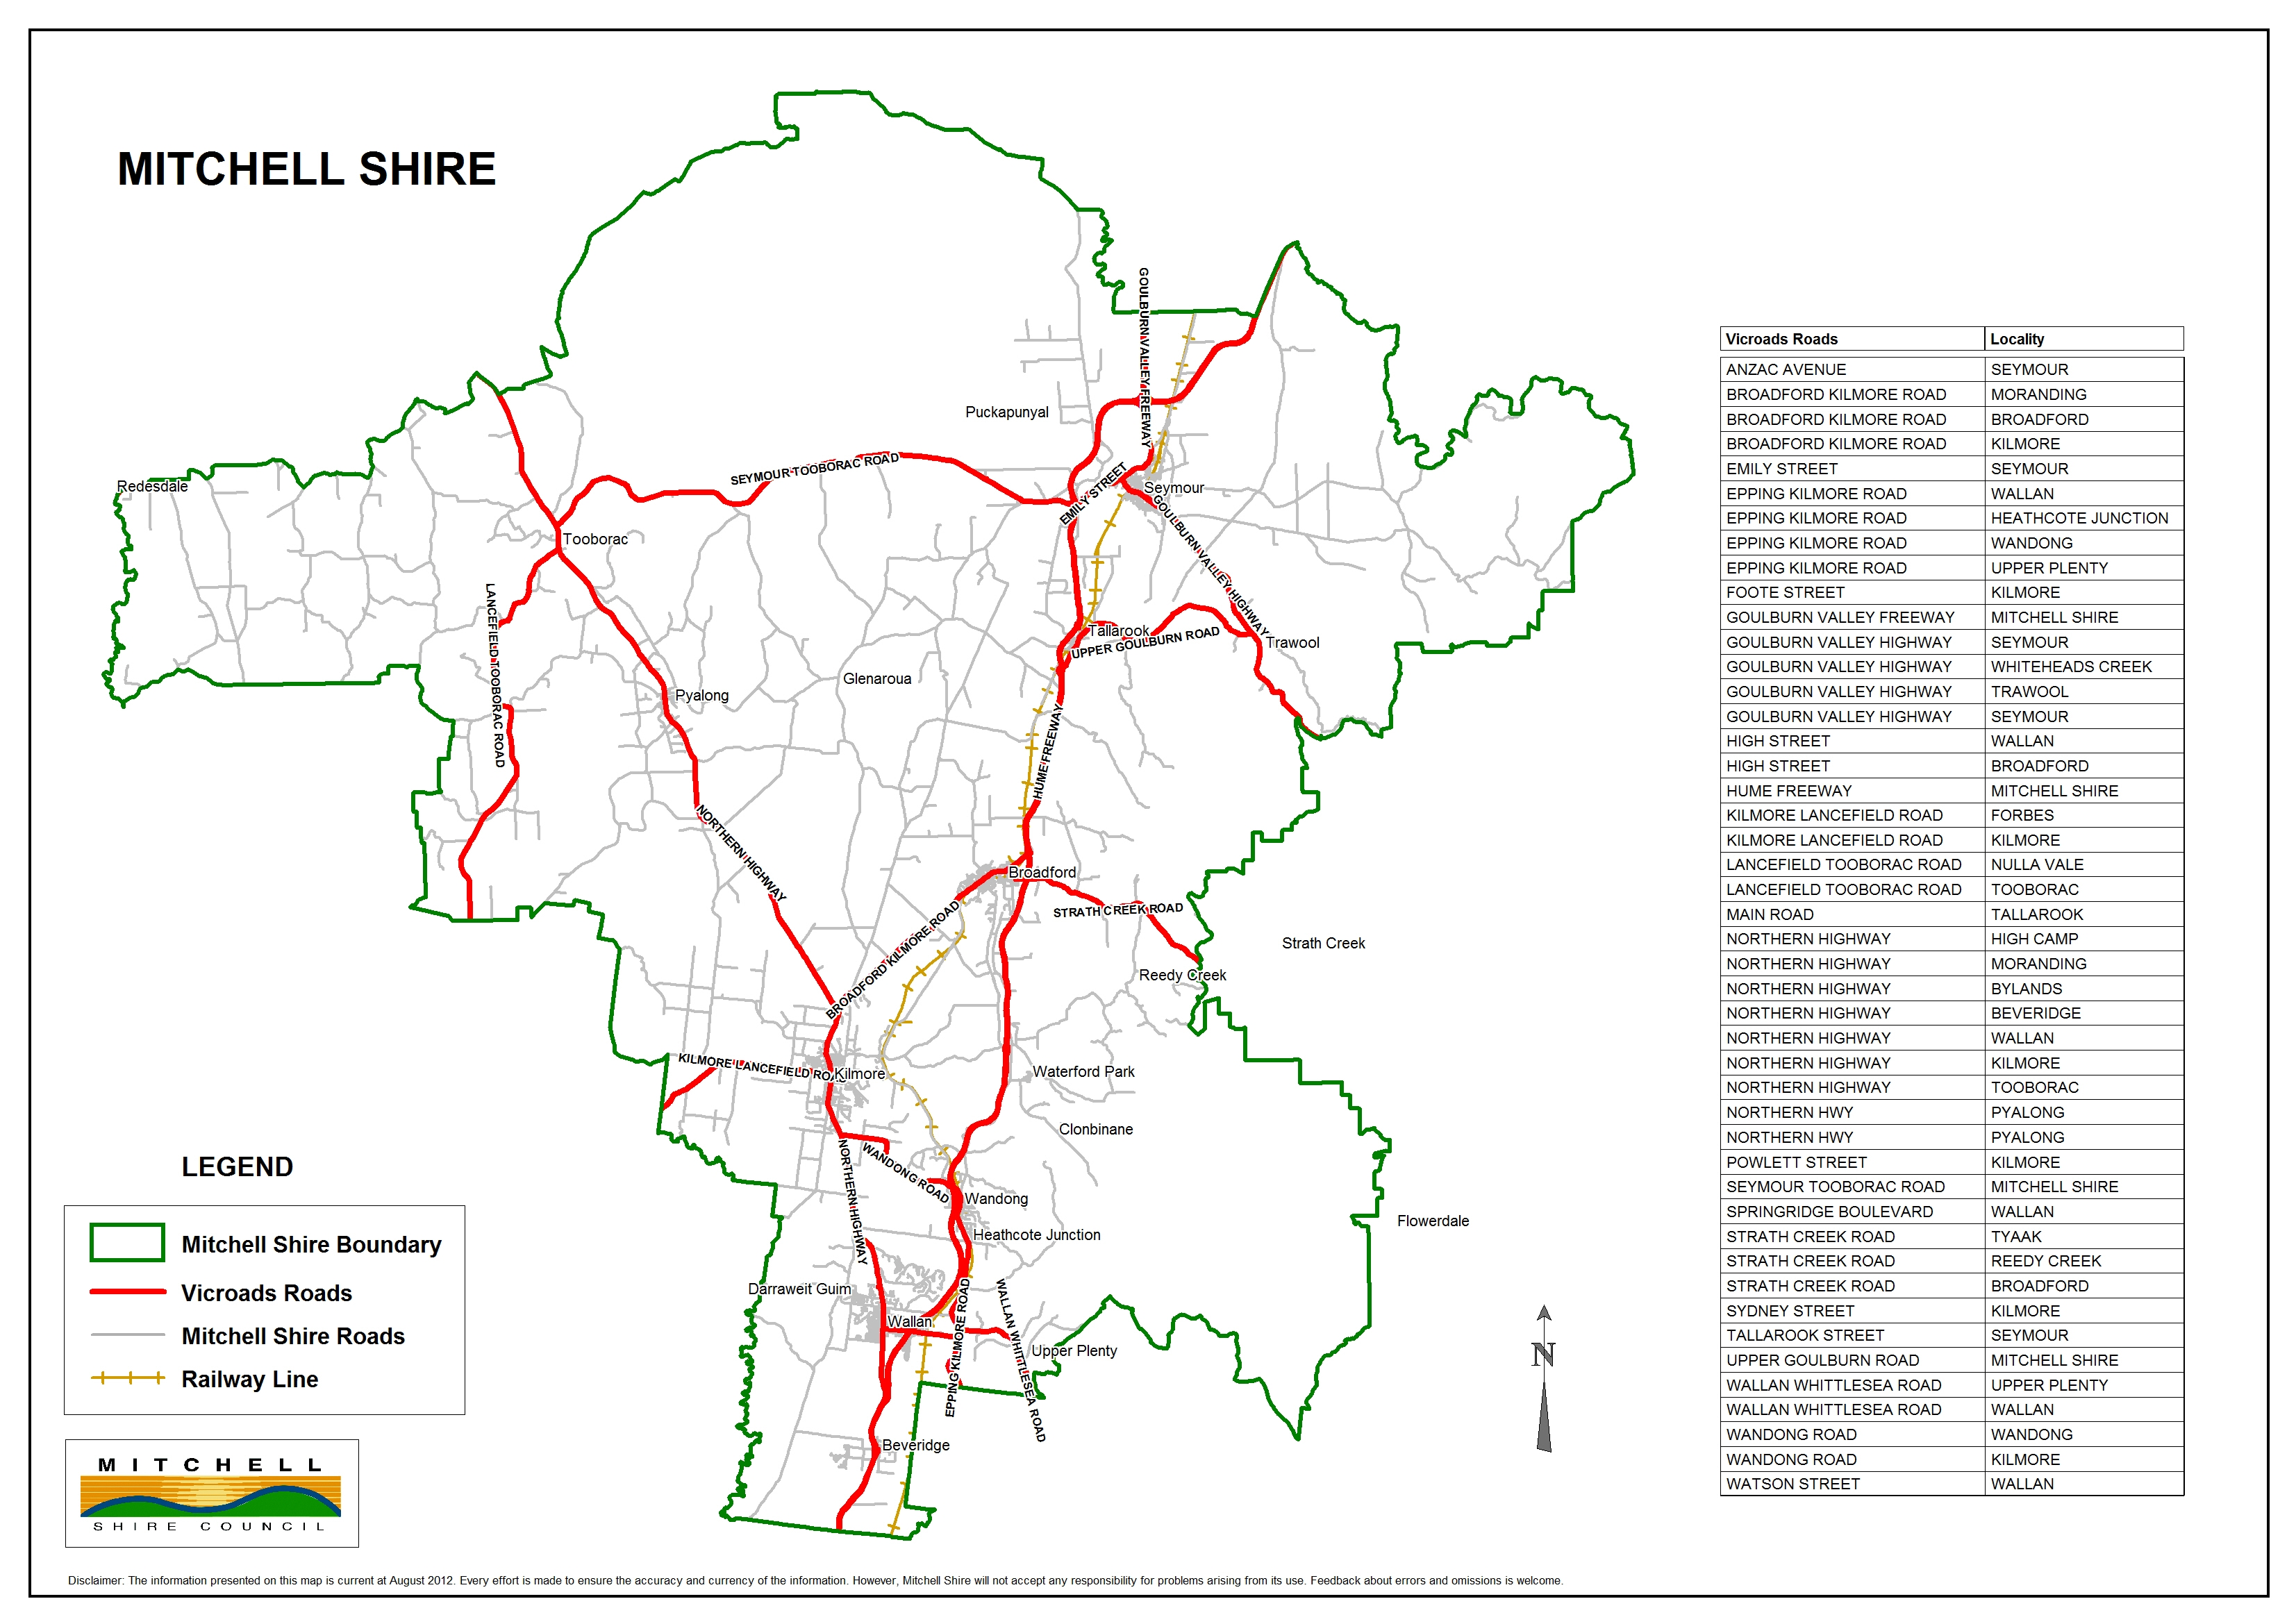 weve prepared a map which shows the road network in mitchell shire and which local roads we manage